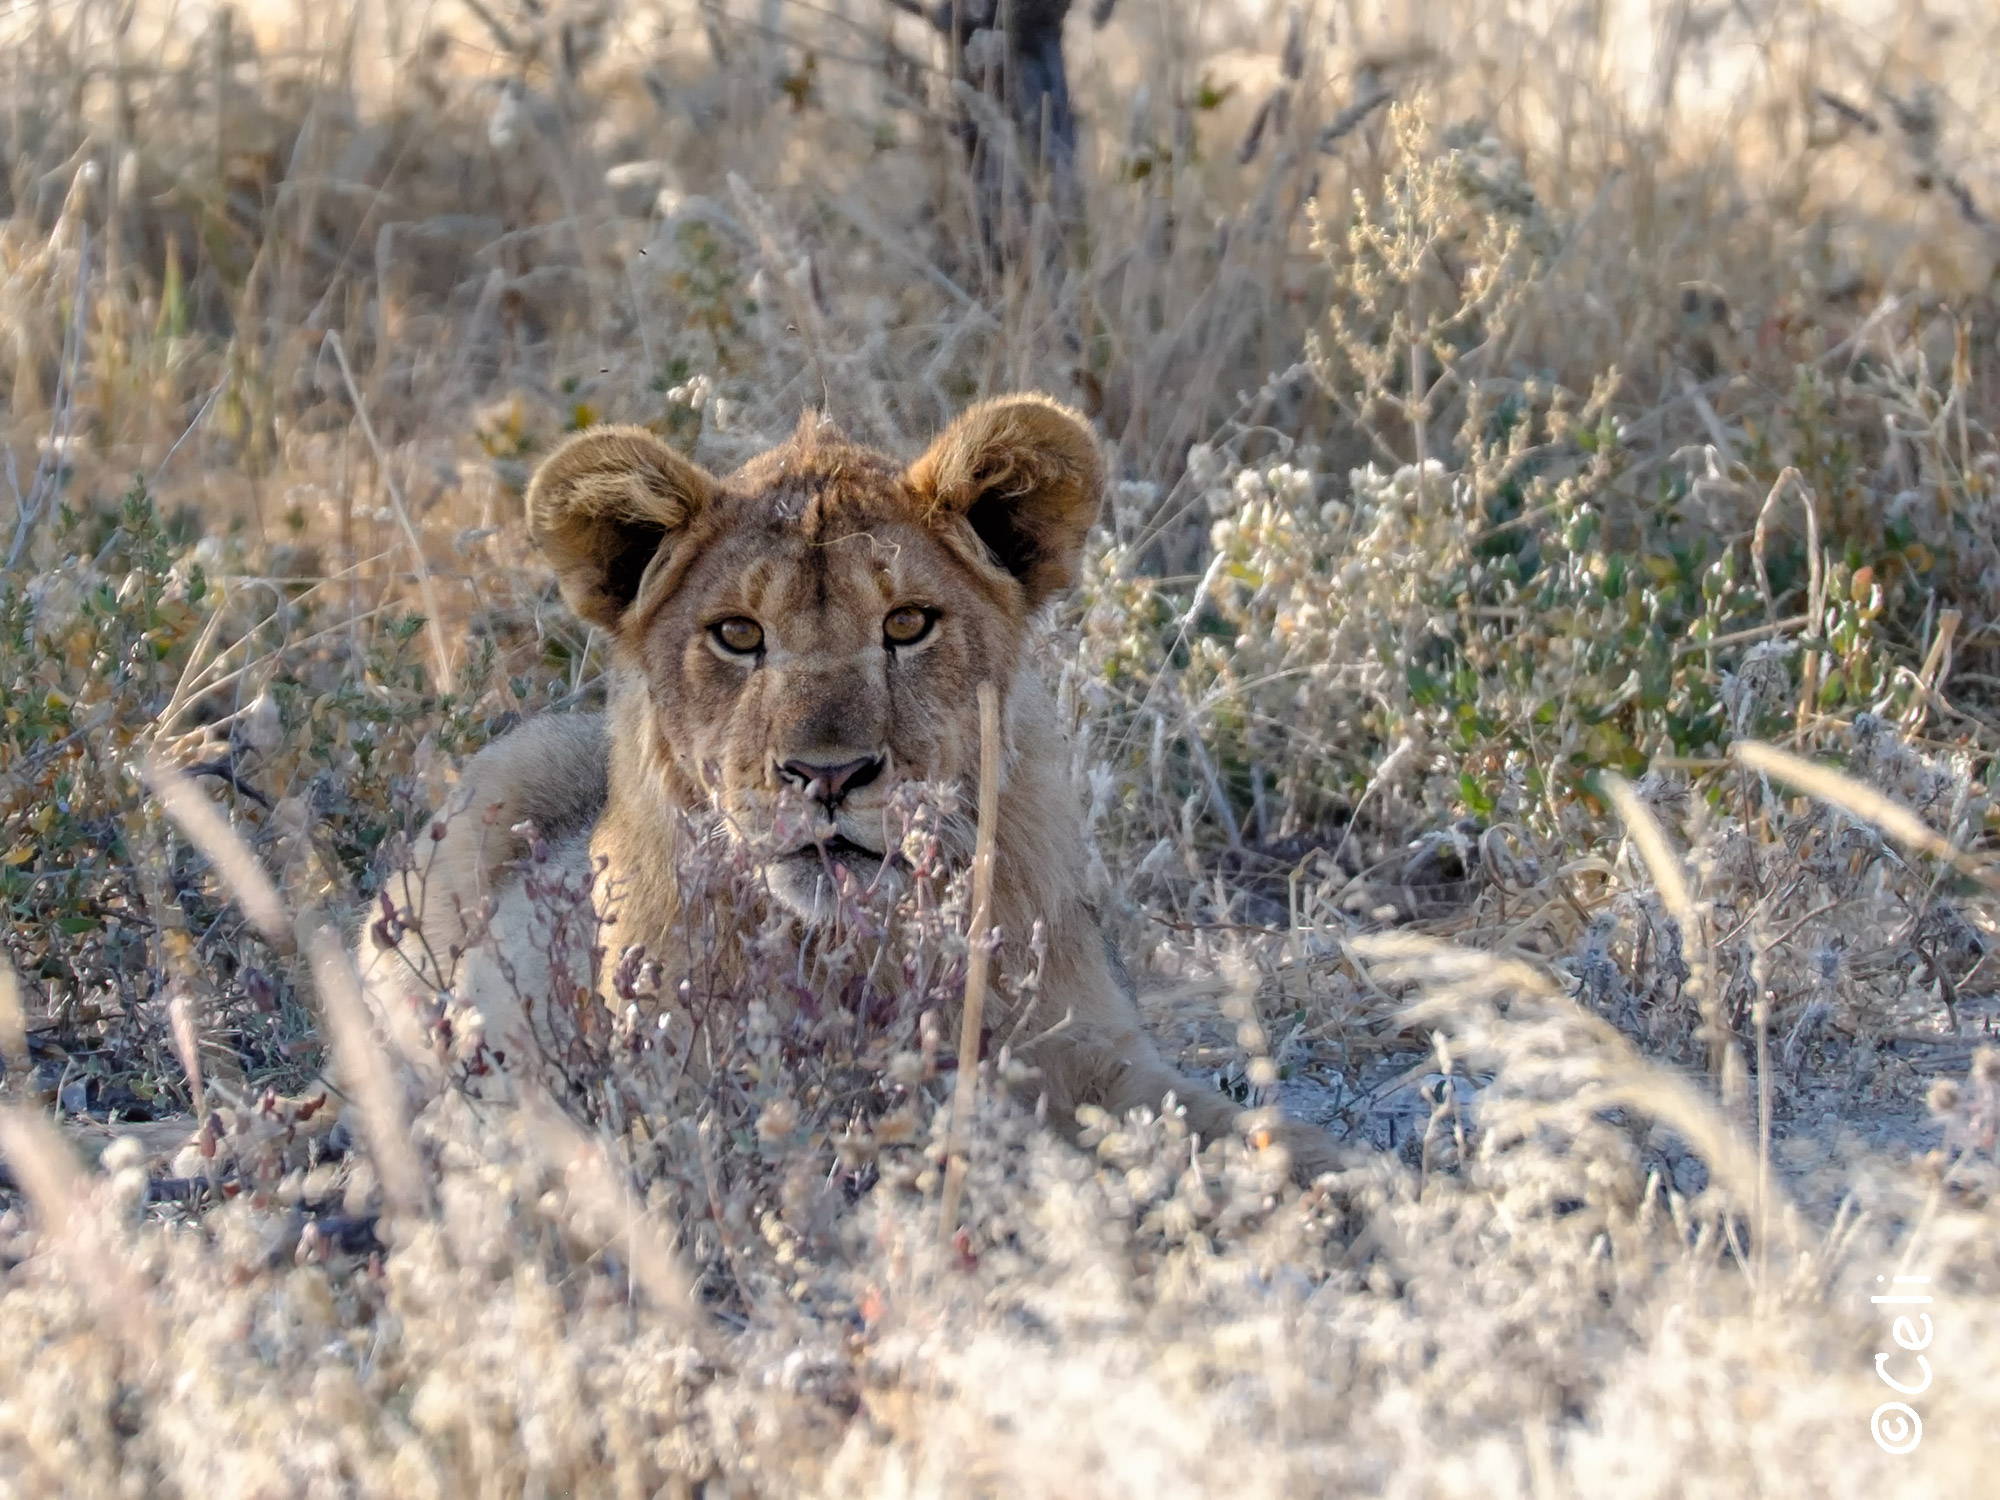 Lion at Etosha national park